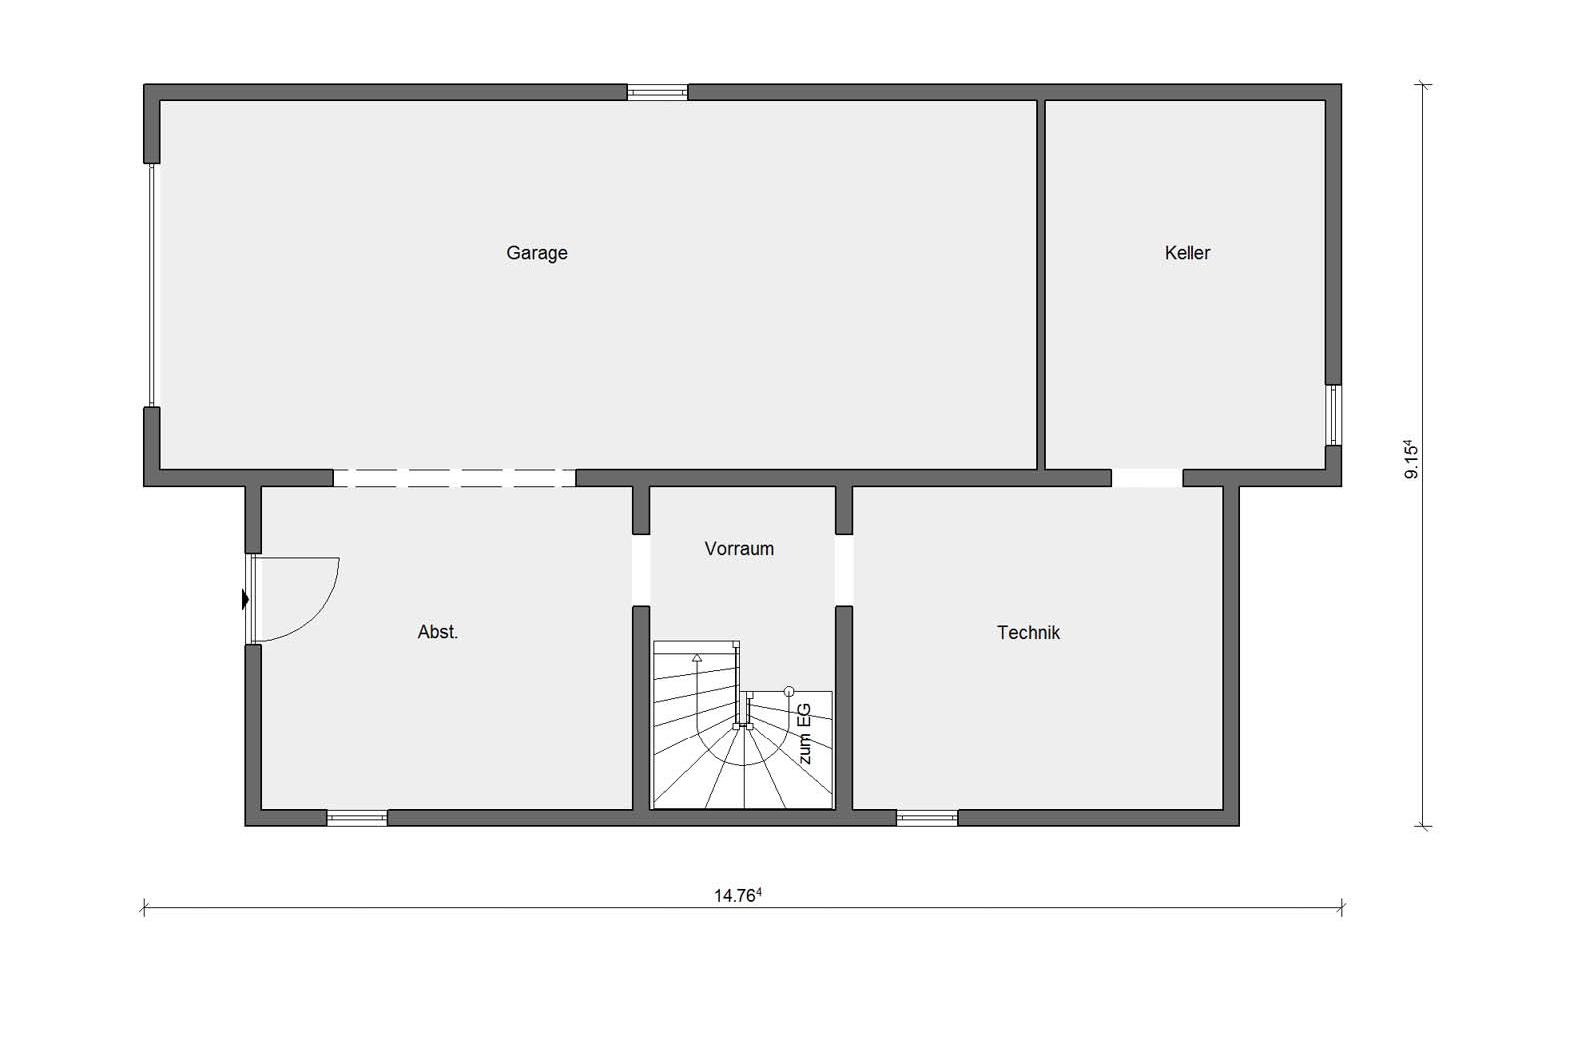 Floor plan basement E 15-217.1 prefabricated house with 200sqm